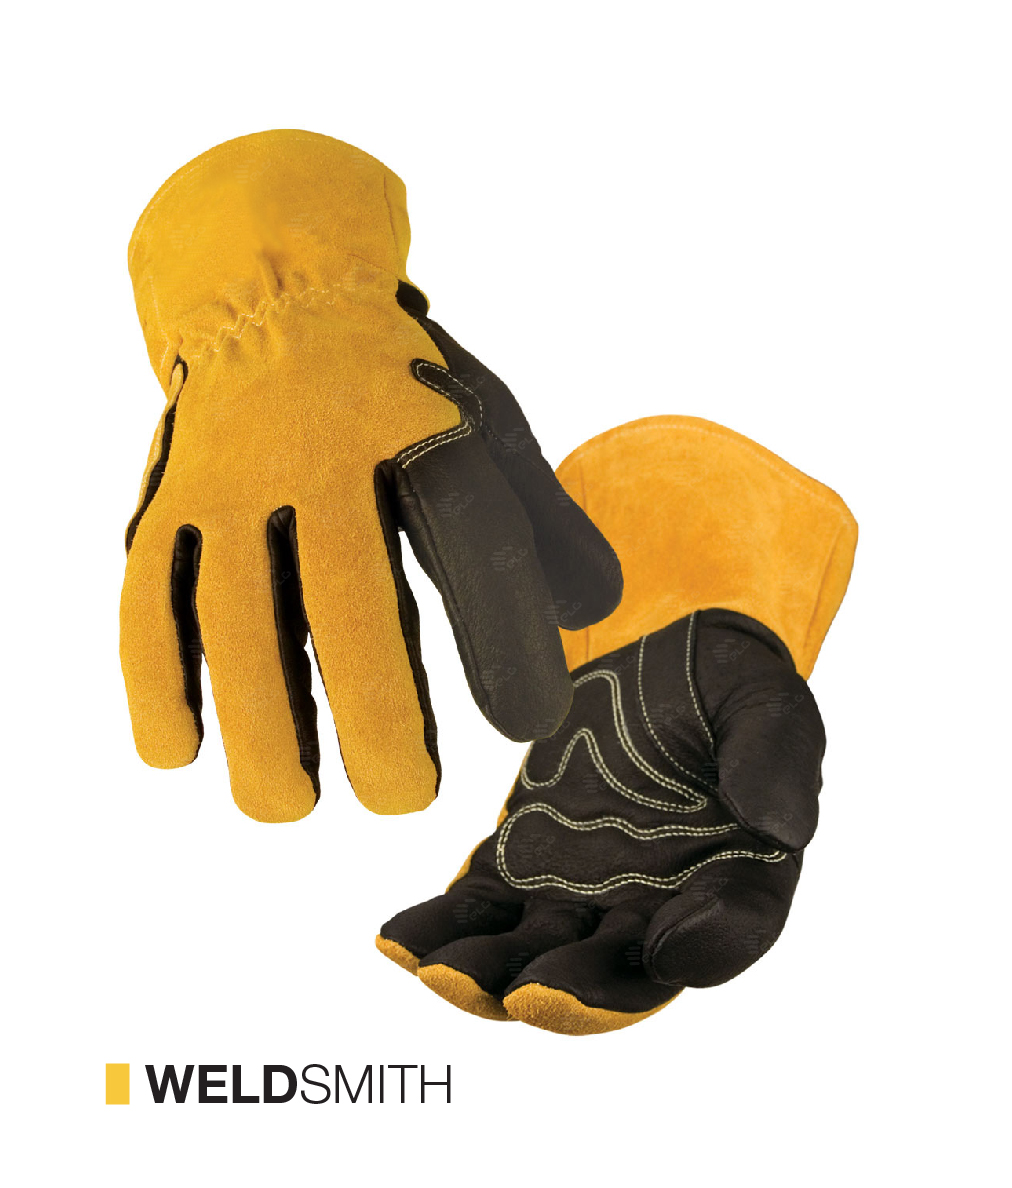 WELDSMITH Cut-resistant gloves provide excellent dexterity to workers